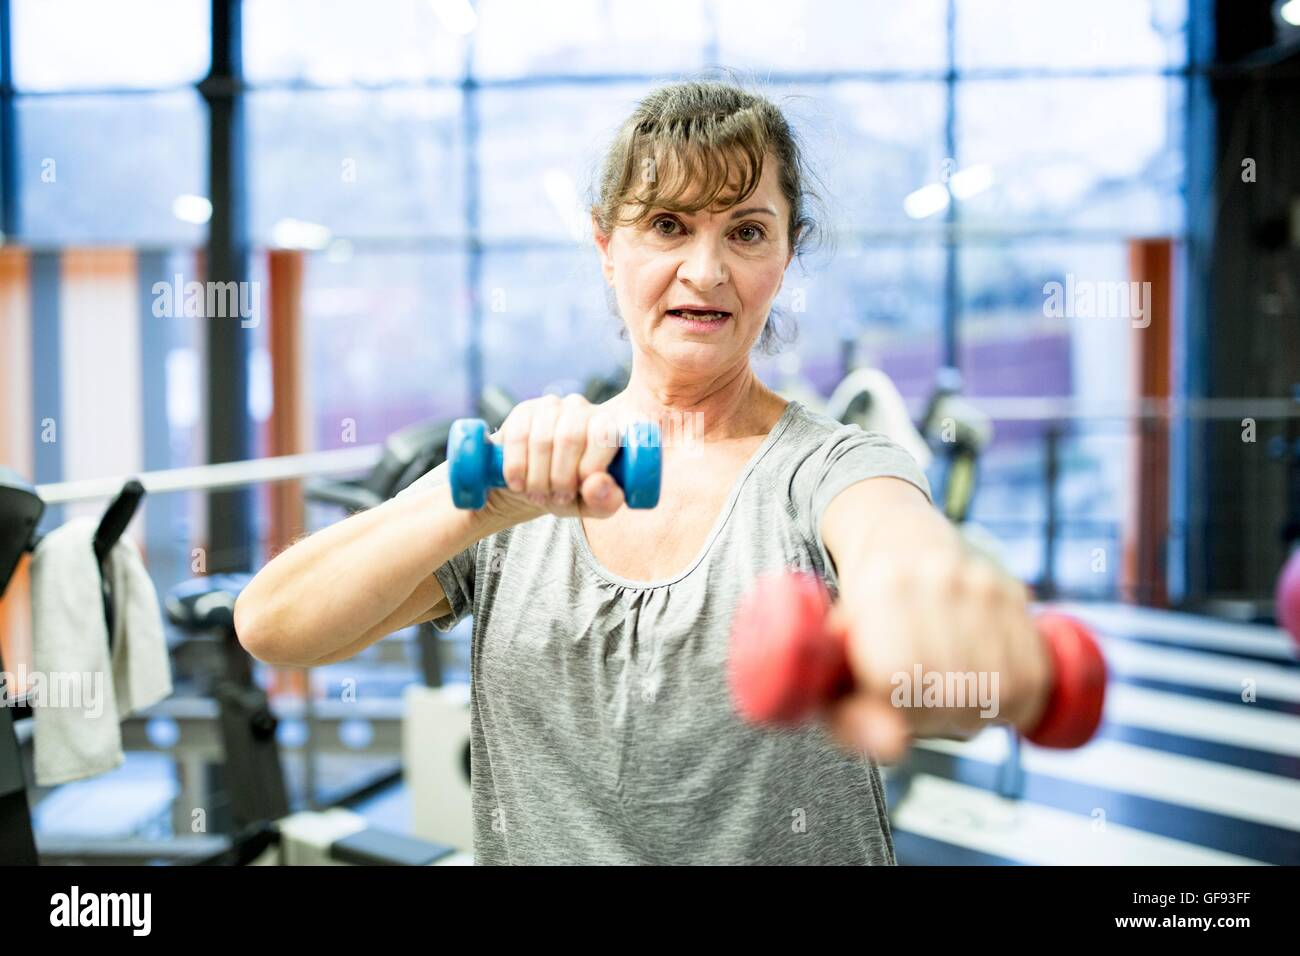 PROPERTY RELEASED. MODEL RELEASED. Portrait senior woman holding dumbbell in gym. - Stock Image